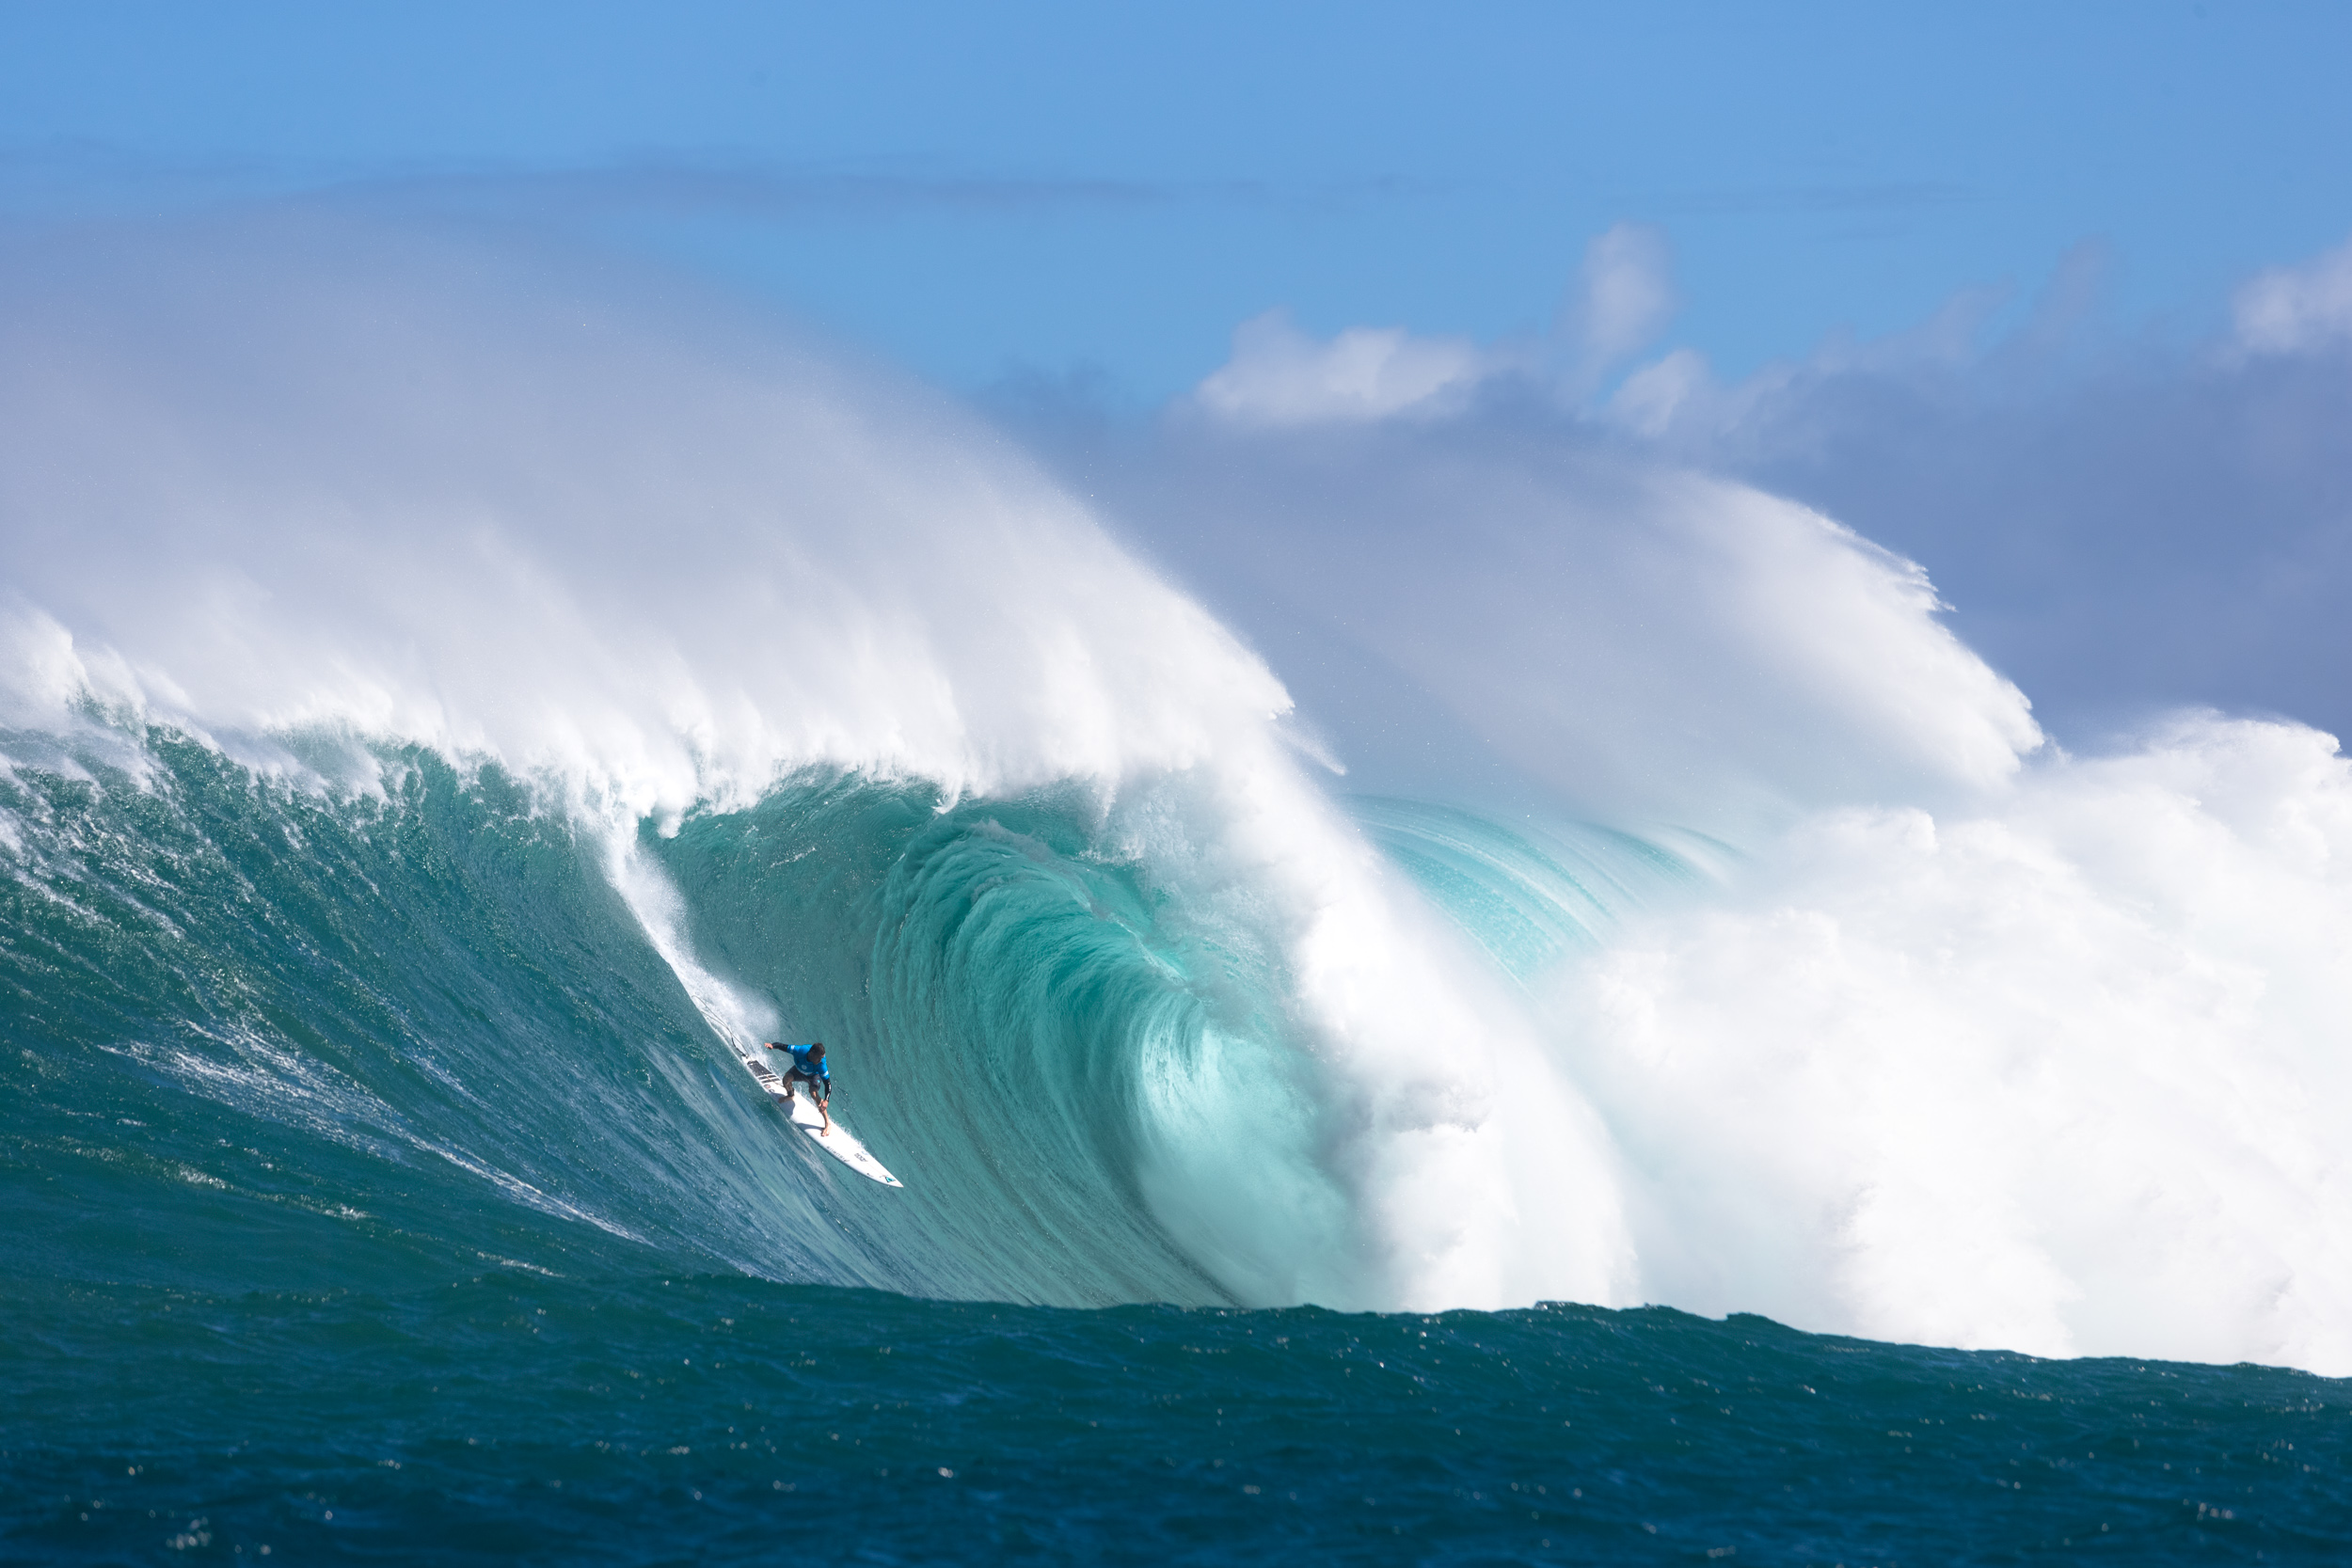 Twiggy Wins Ride Of The Year For Non Make At Big Wave Awards